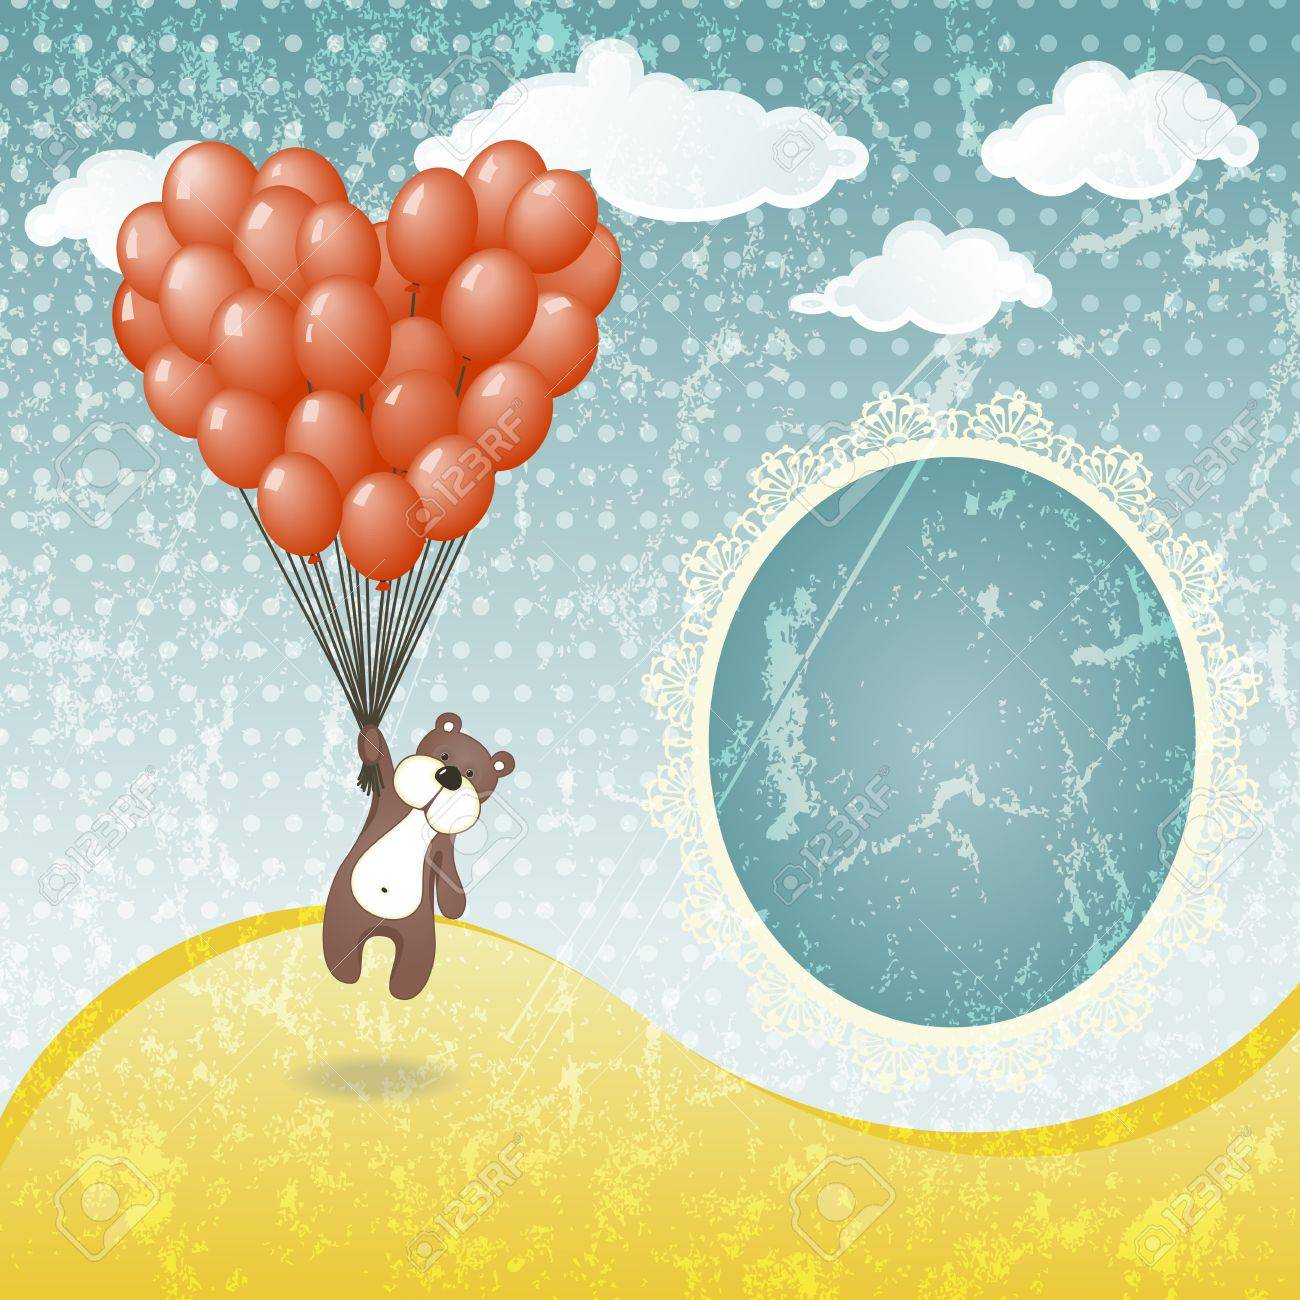 Cute teddy bear with a balloon  illustration in vintage style Stock Vector - 13927552